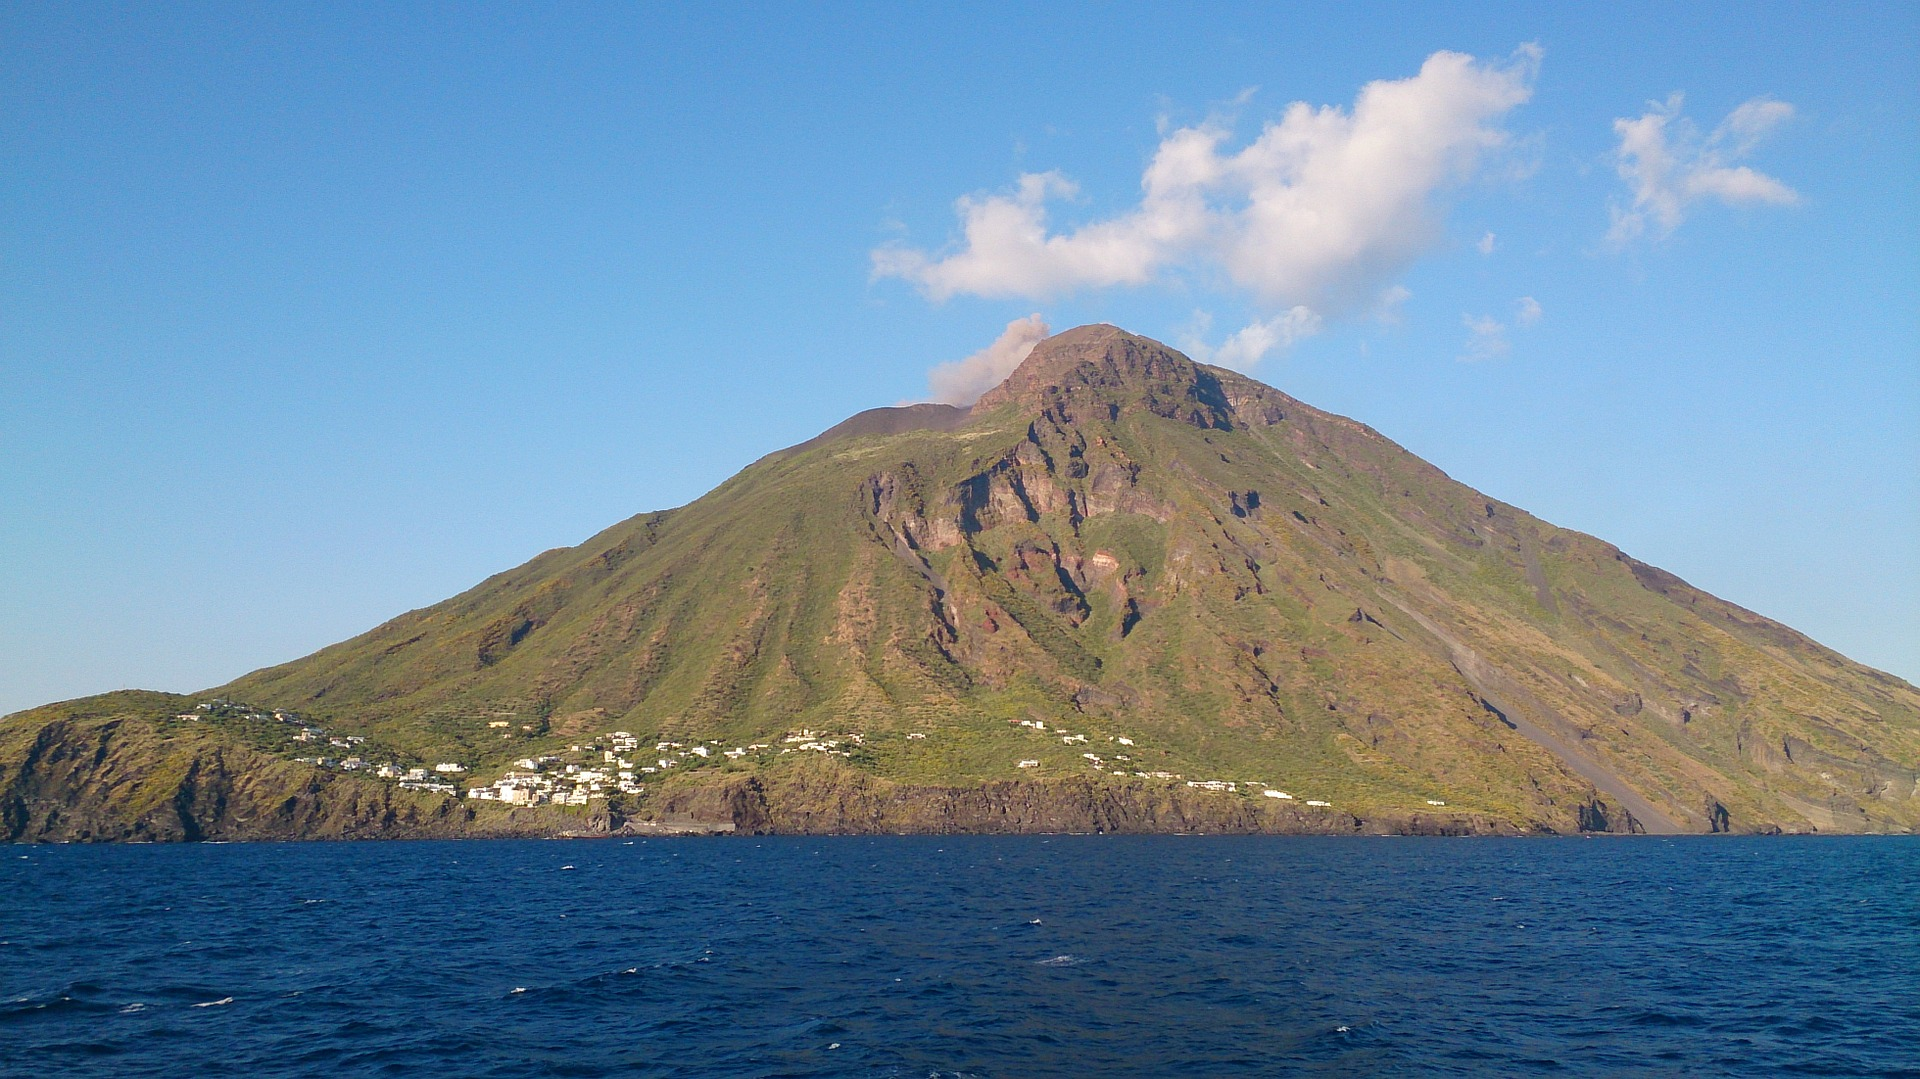 Sicily and the Aeolian Islands